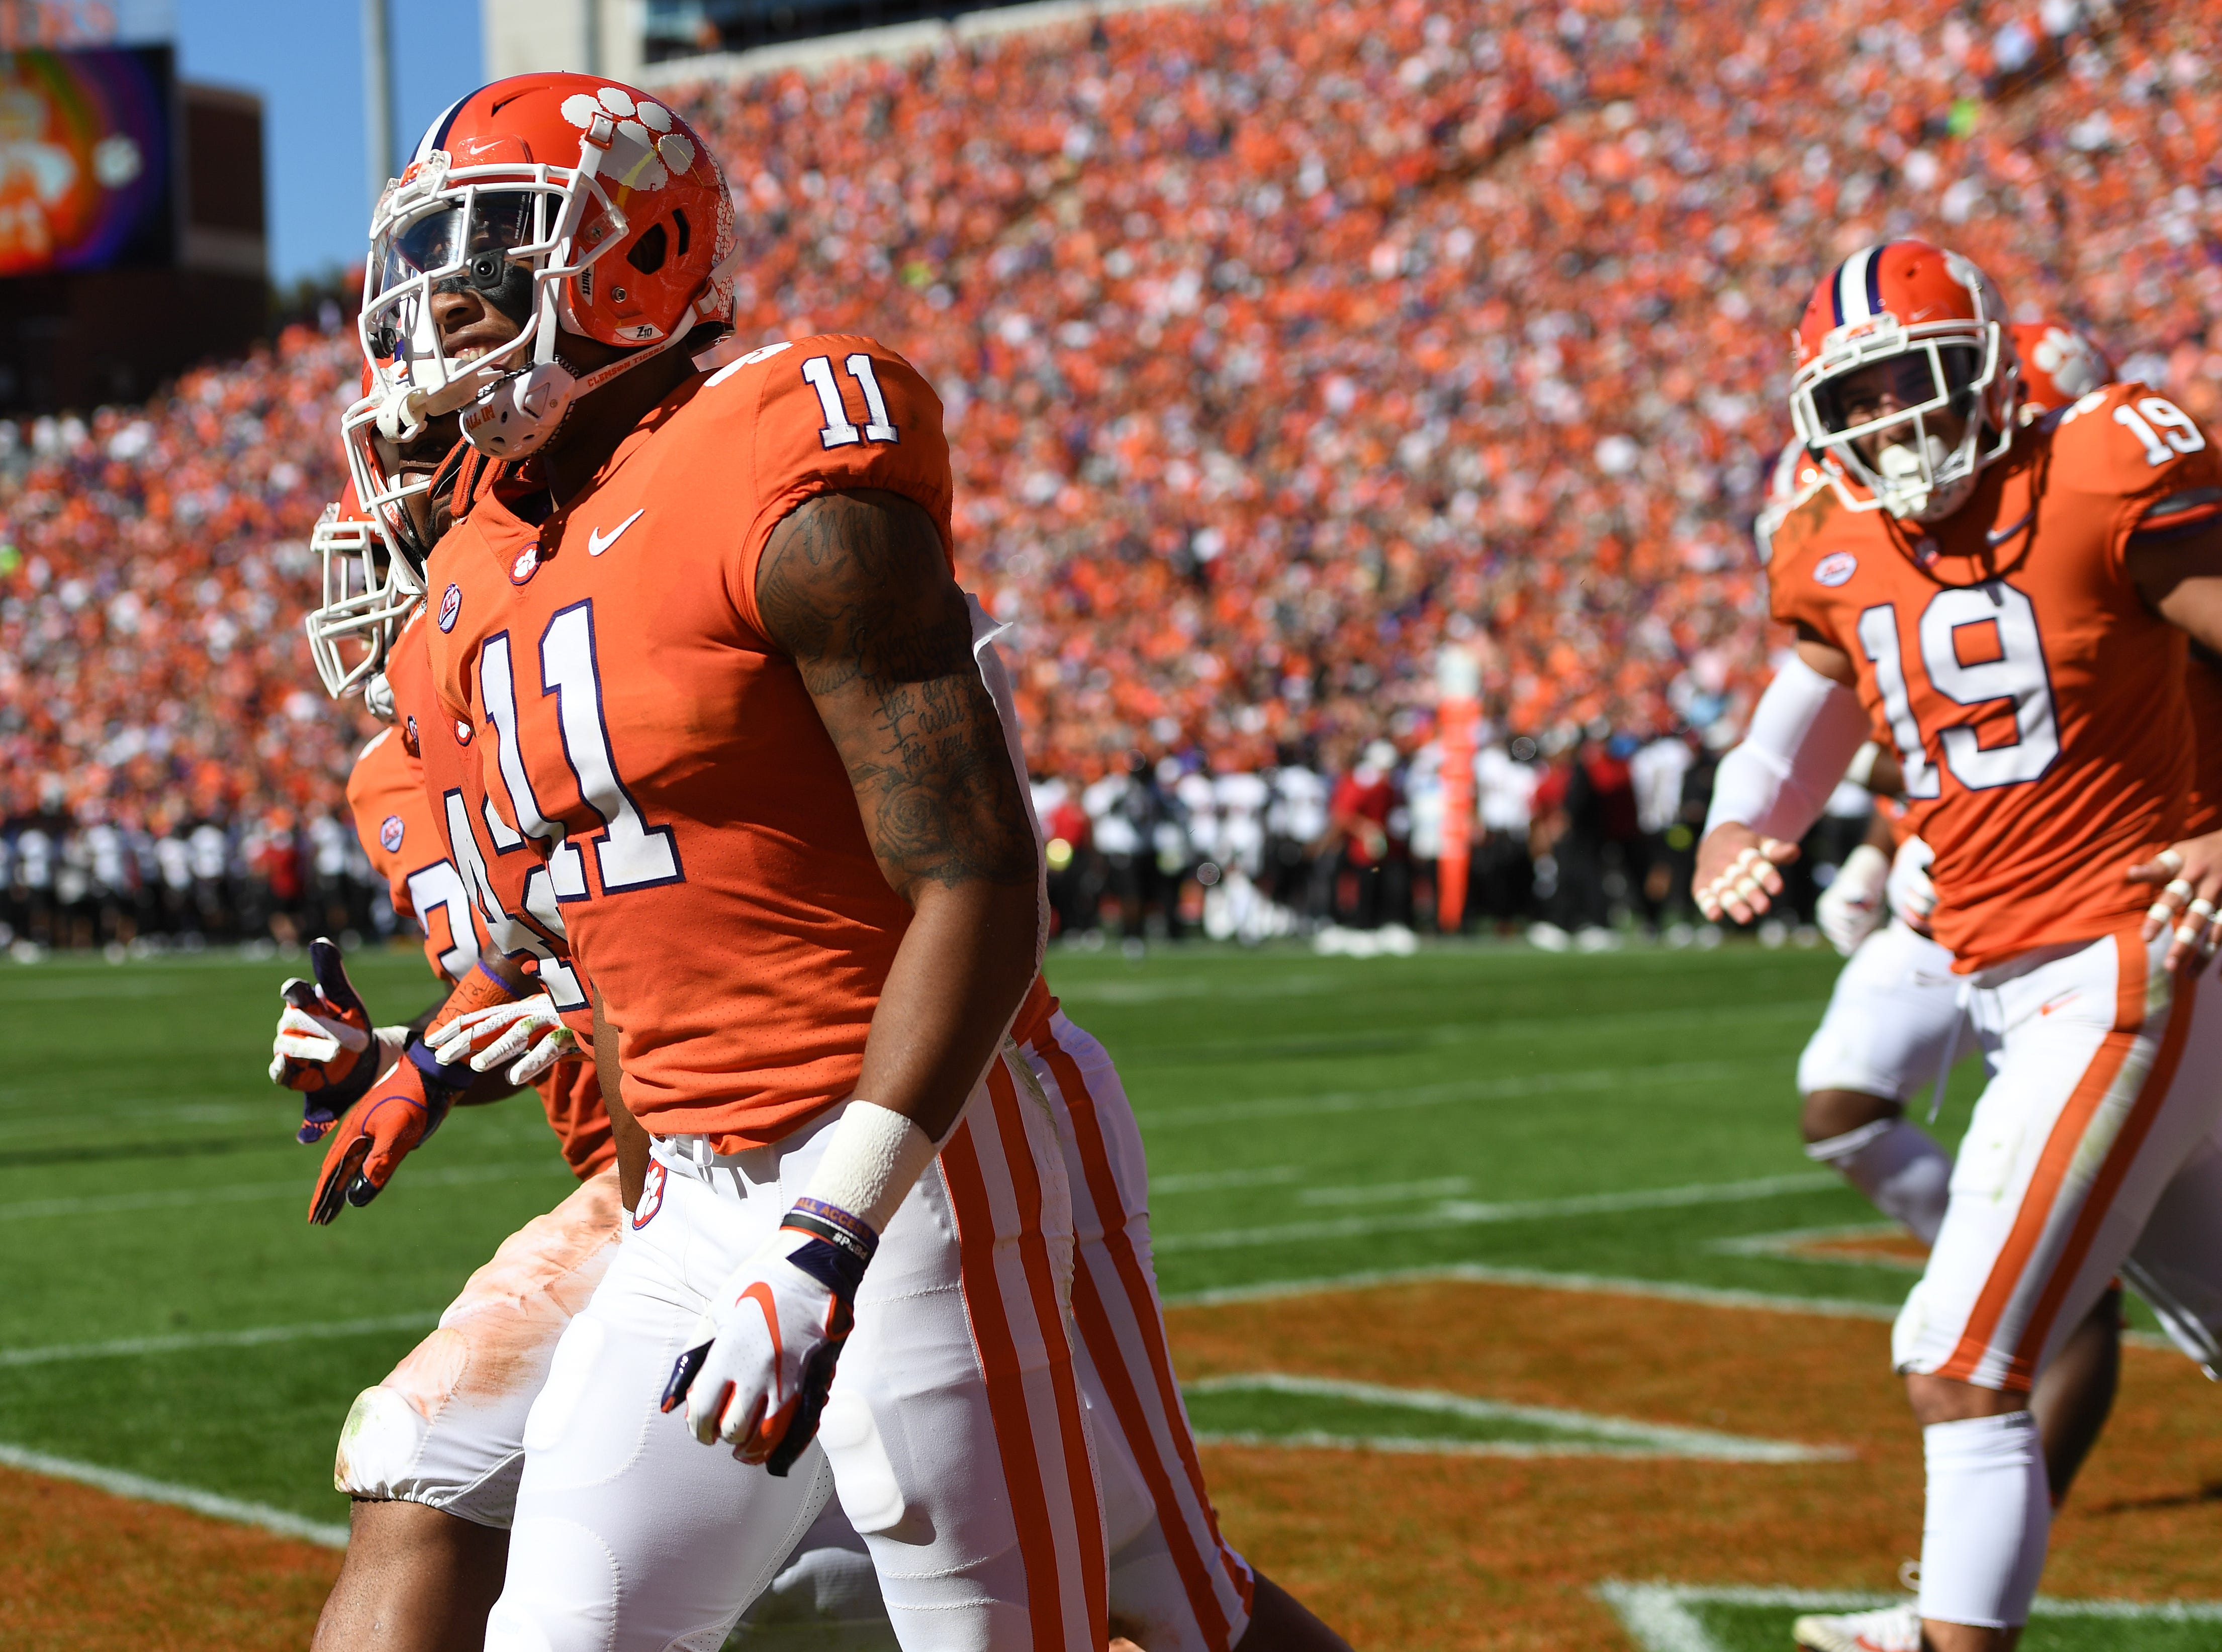 Clemson safety Isaiah Simmons (11) celebrates after retiring a Louisville interception for a TD during the 2nd quarter Saturday, November 3, 2018 at Clemson's Memorial Stadium.